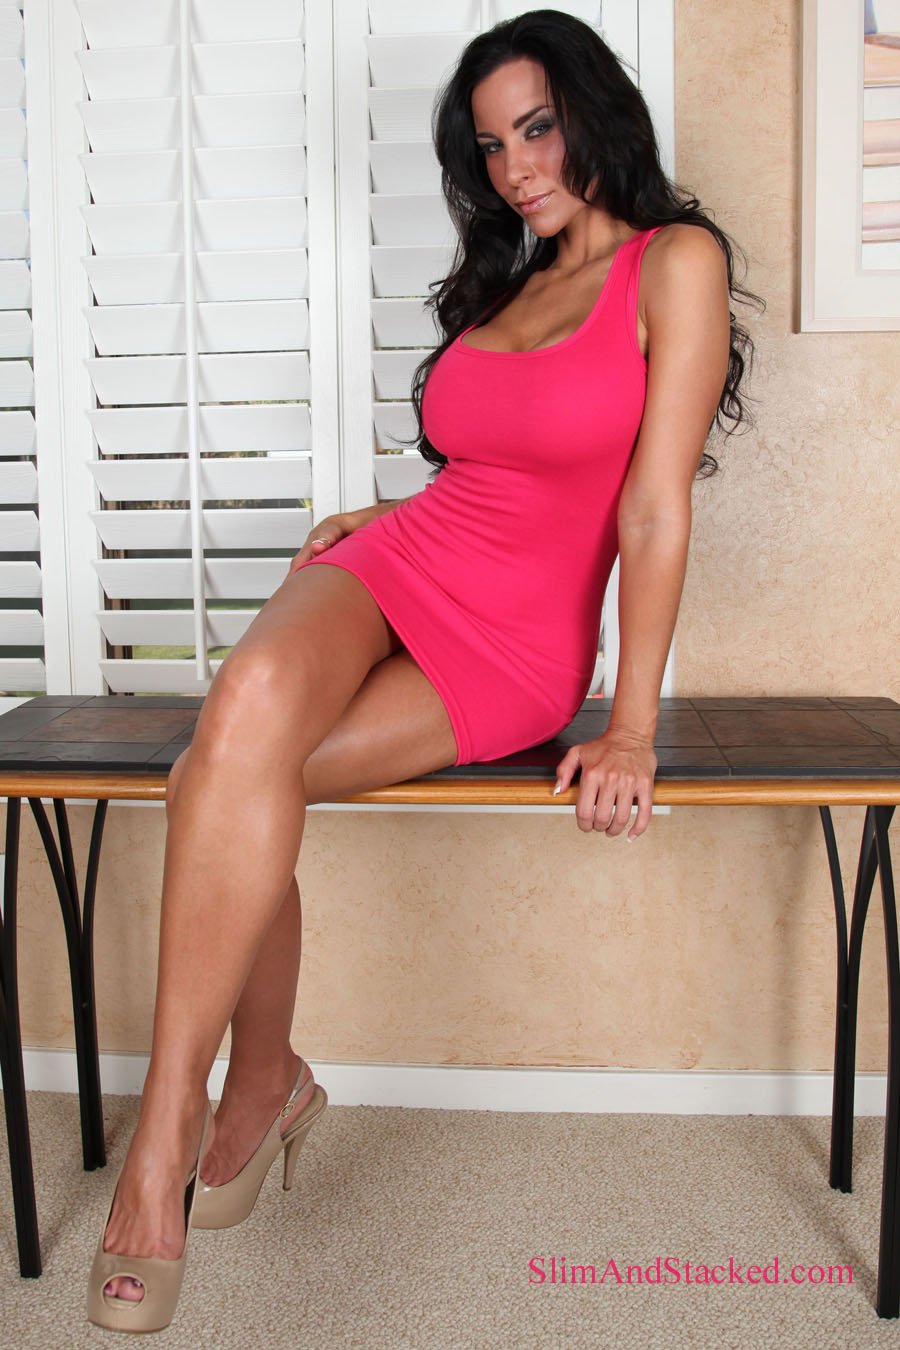 Laura Lee smoulders in a tight red dress.  Image how hot she looks when the dress comes off!  Contact dezertimagez@gmail.com for complete set pricing.